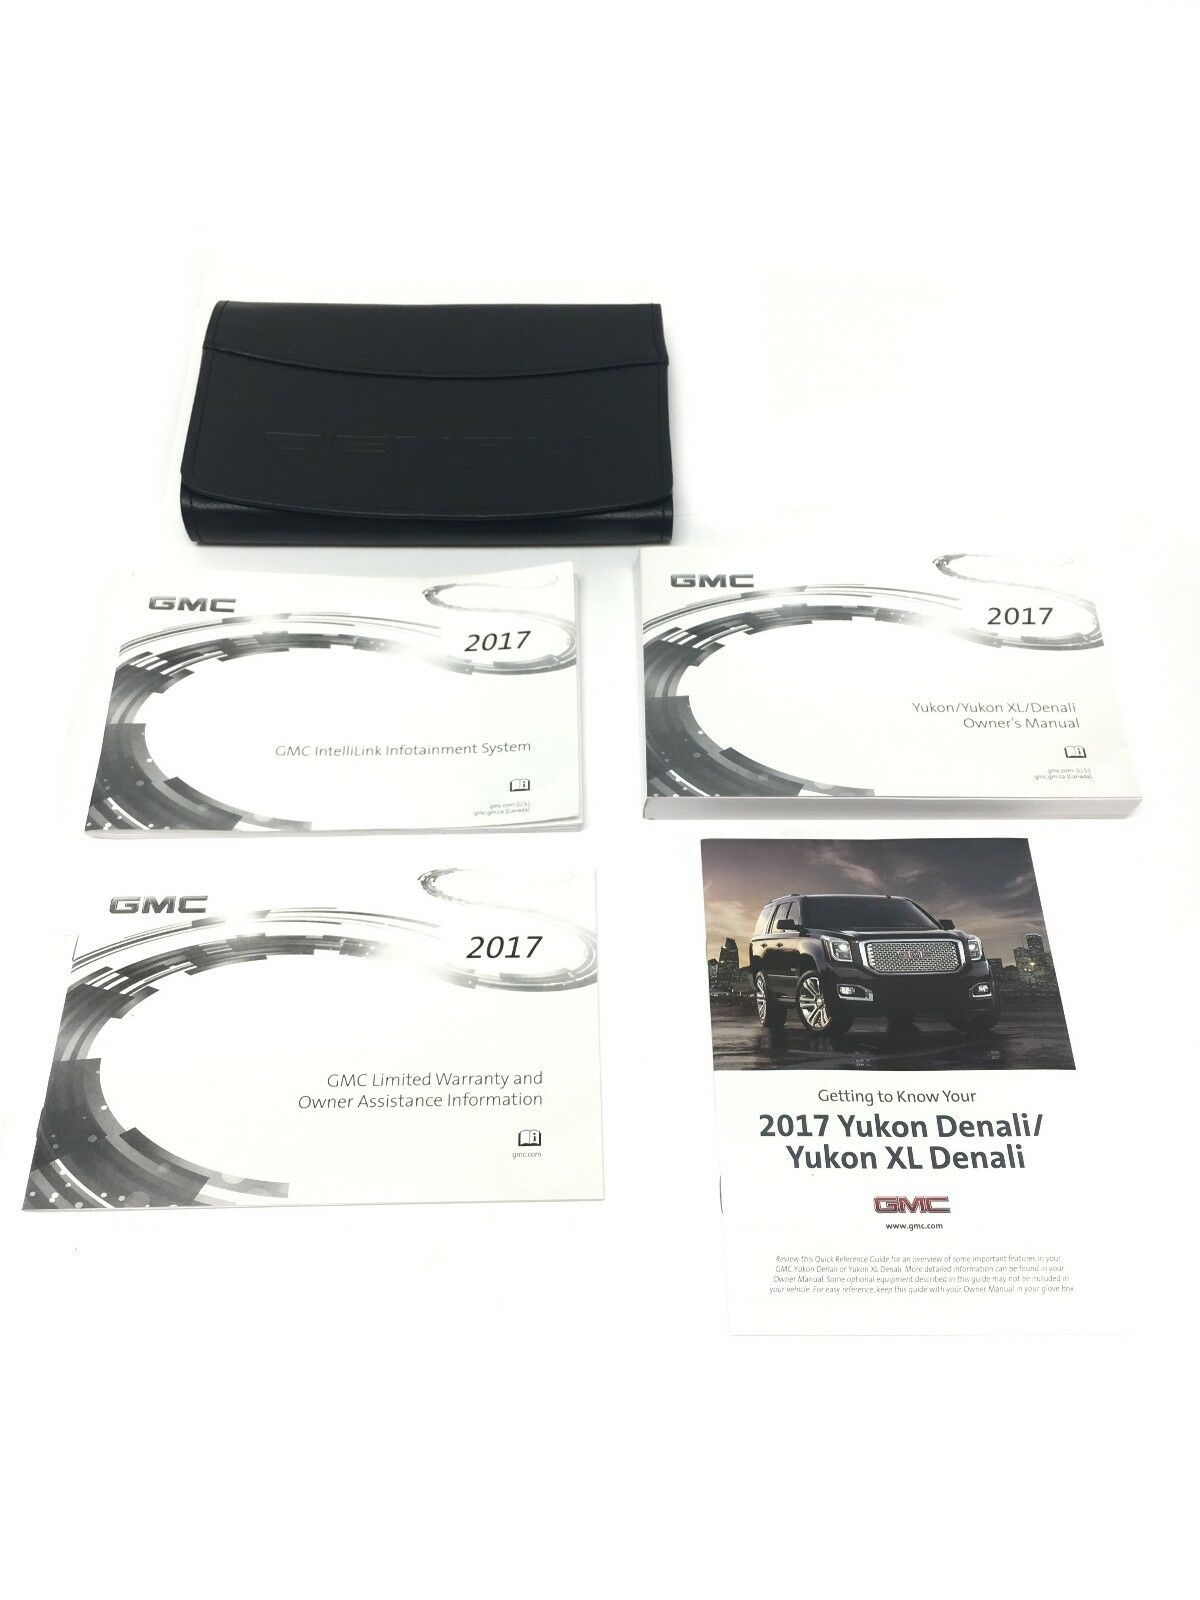 2017 gmc yukon denali owners manual booklet w leather case new oem rh picclick com 1998 GMC Yukon Denali 2002 GMC Yukon Denali